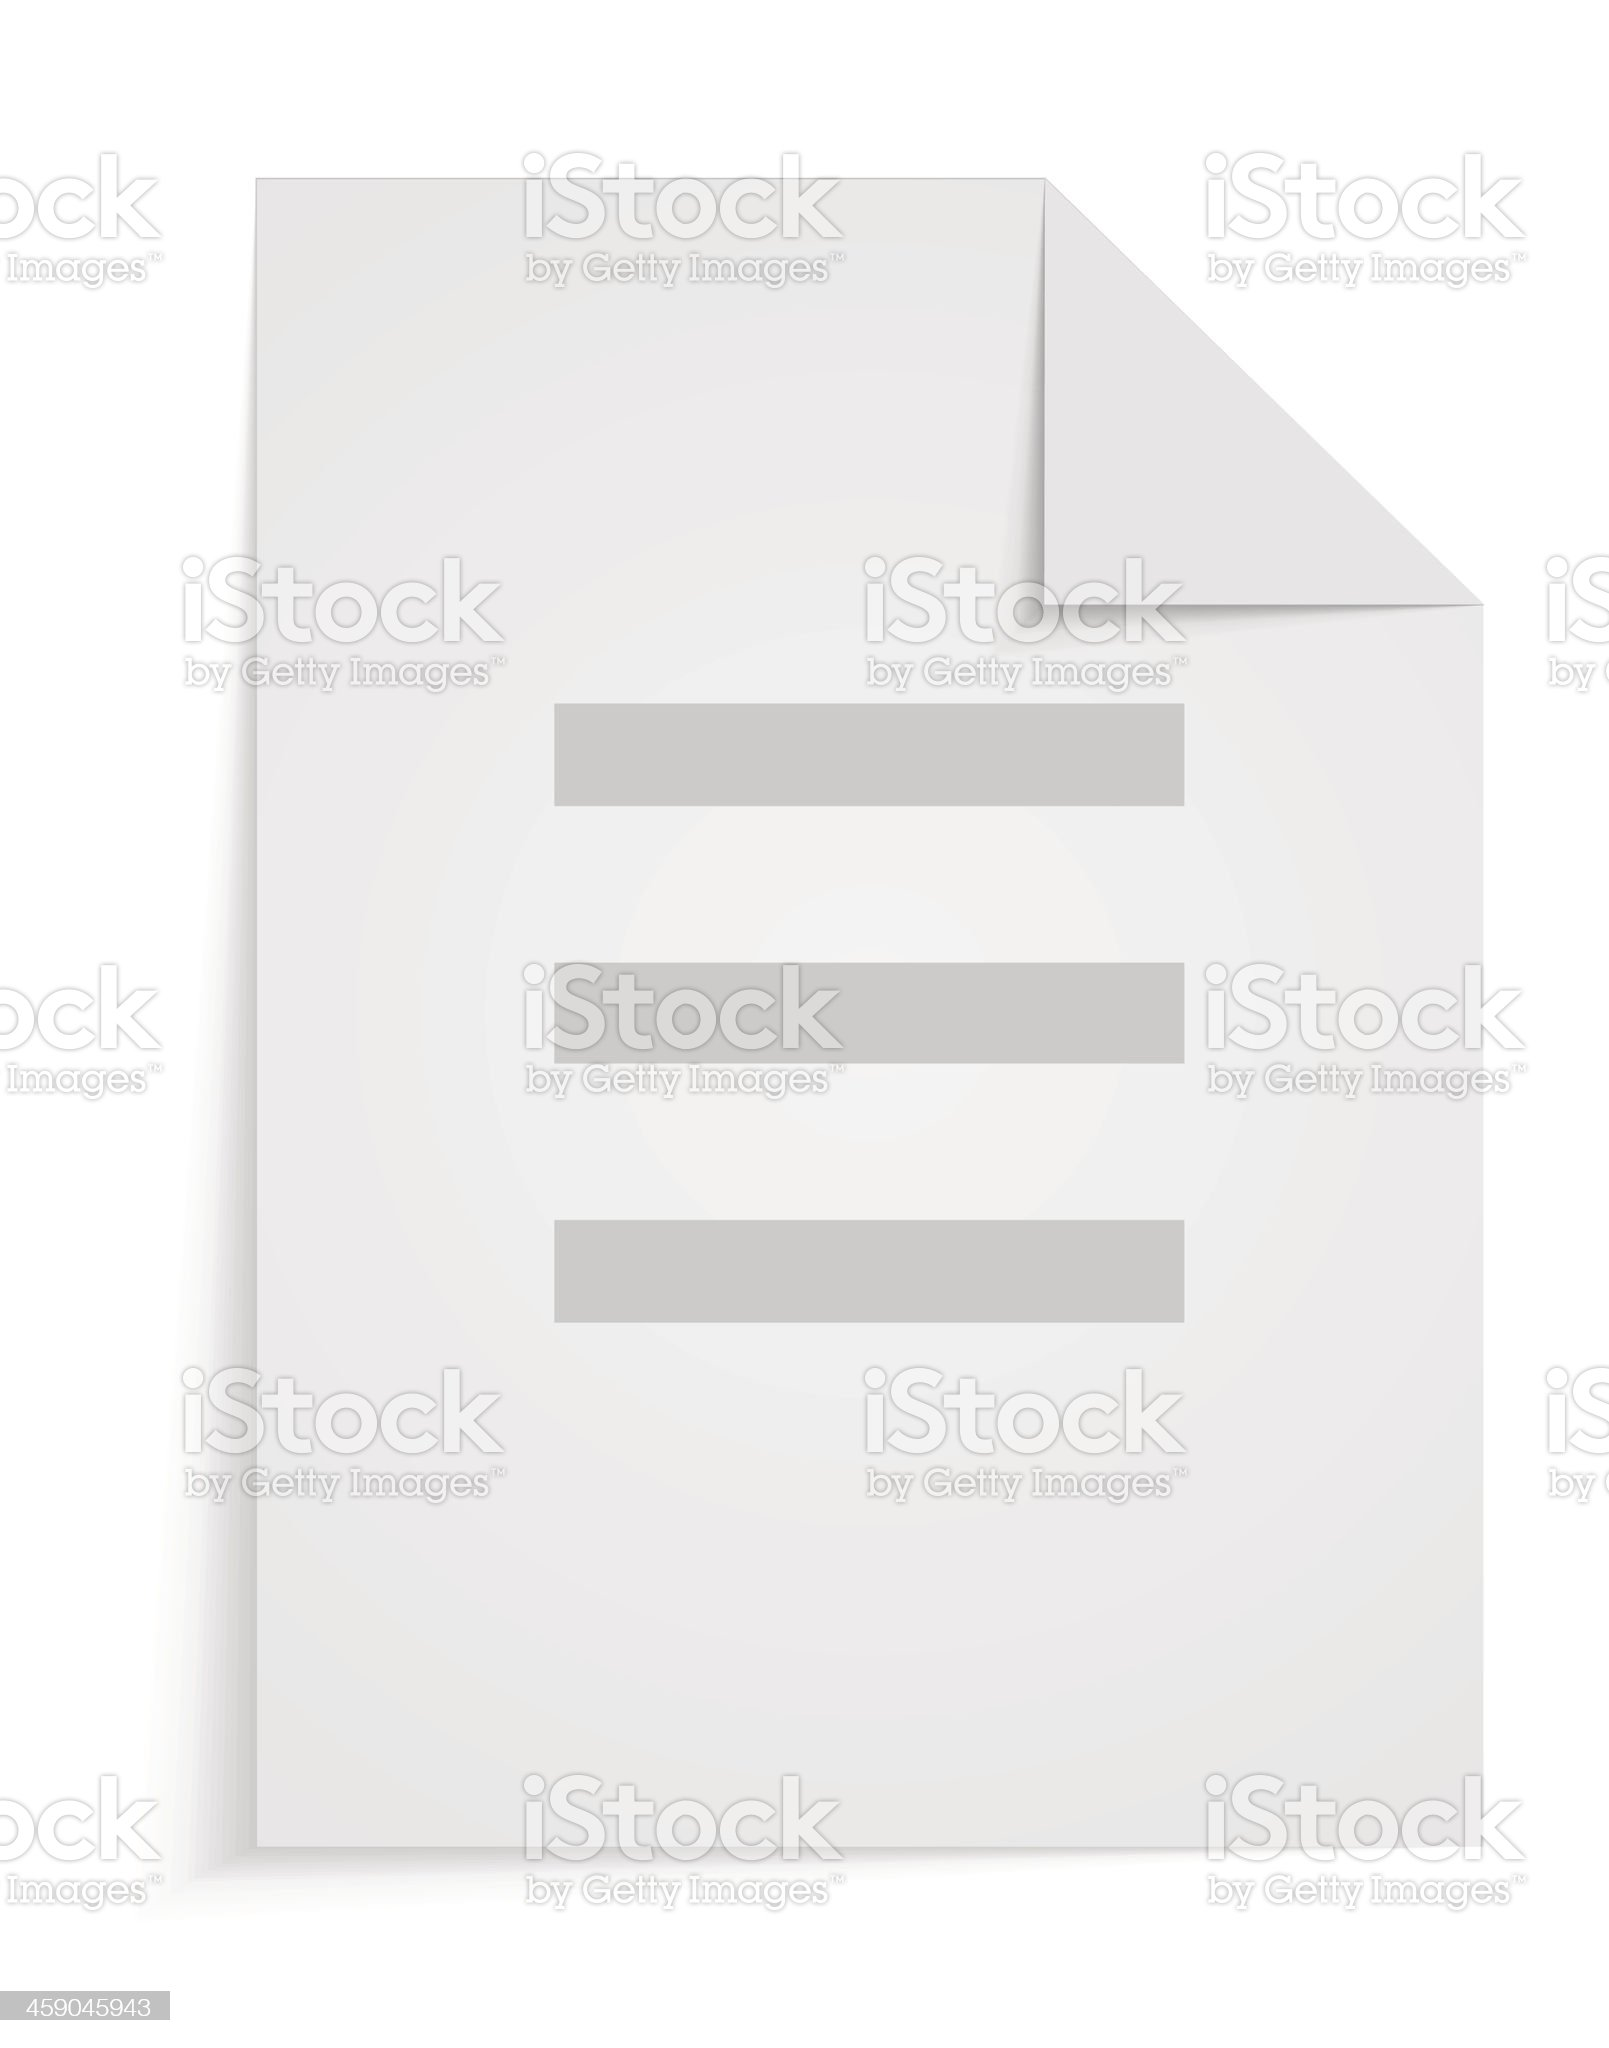 Vector blank on white background. Eps 10 royalty-free stock vector art